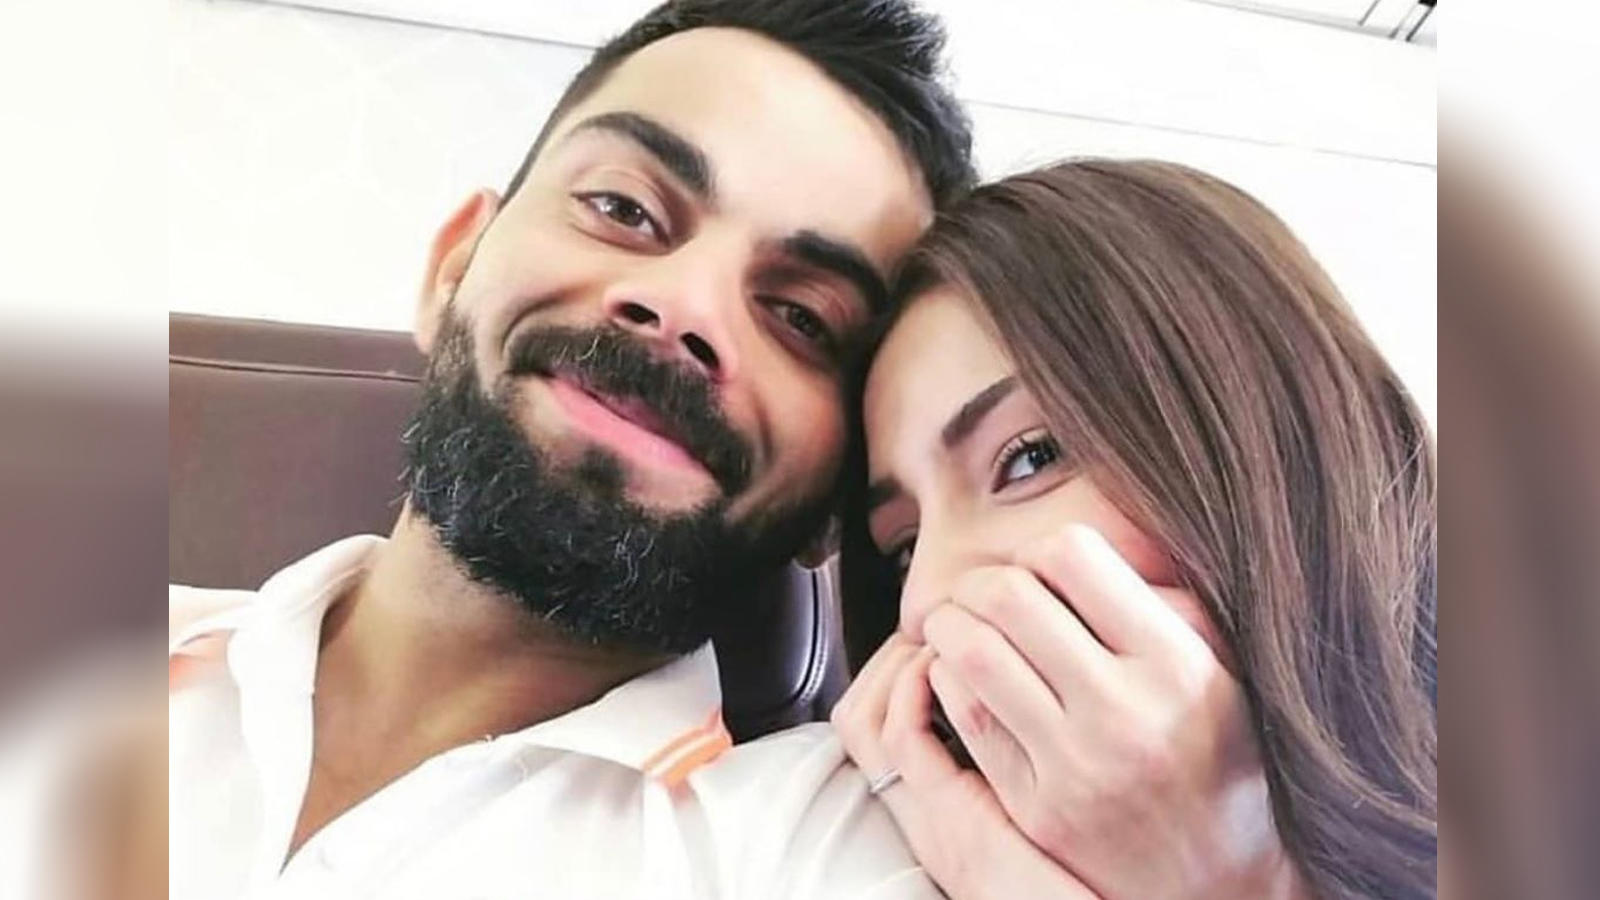 Virat Kohli and Anushka Sharma ace the perfect selfie in this picture!